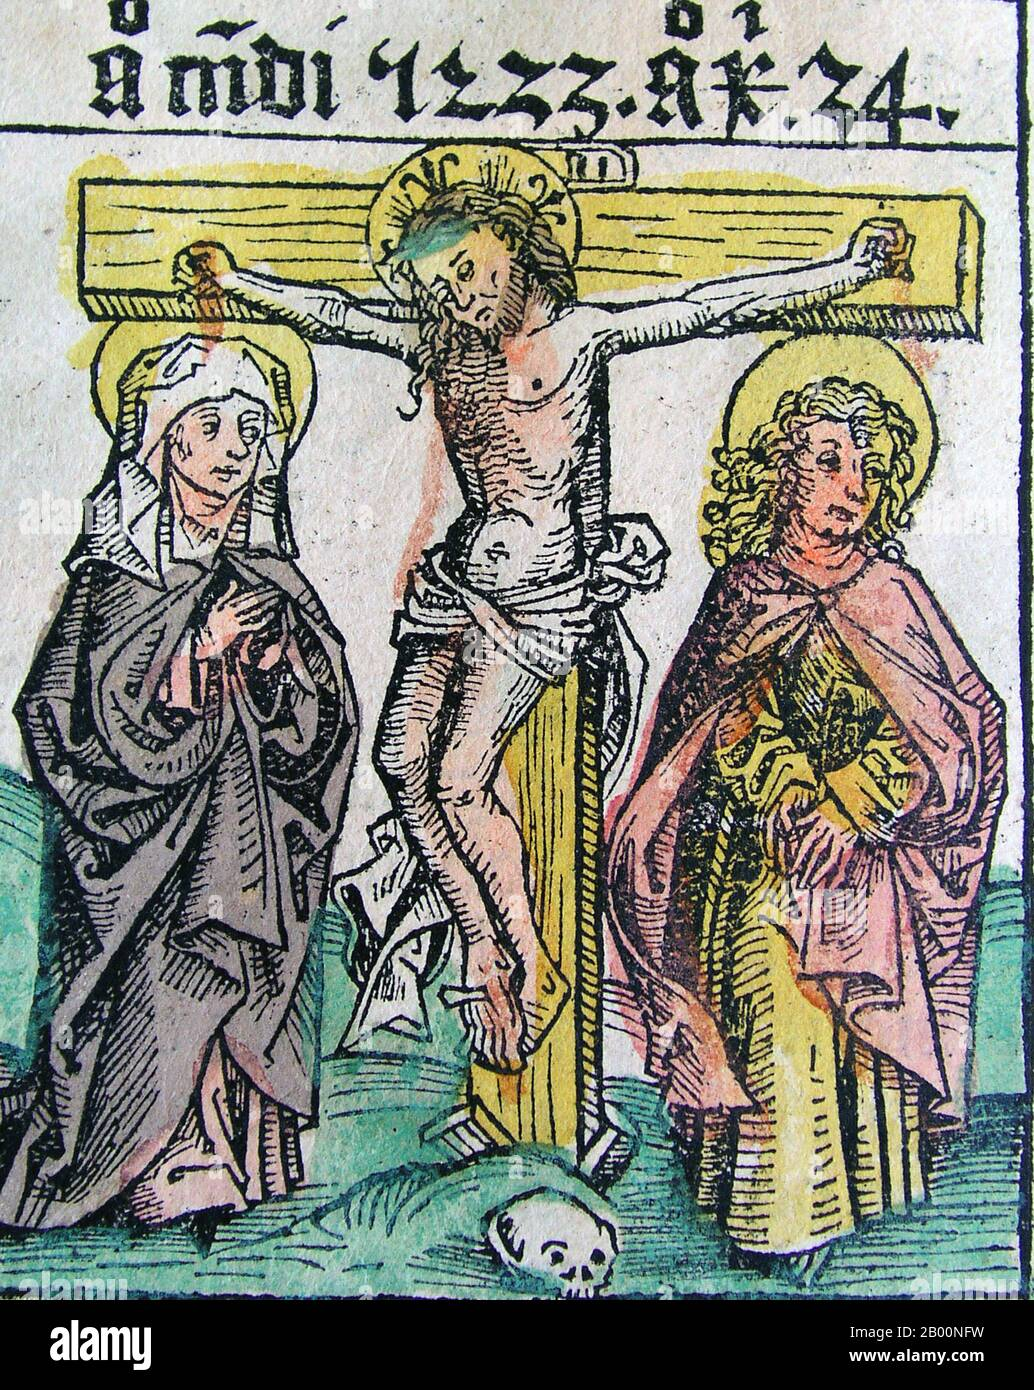 Germany: 'Crucifixion of Jesus'. The Nuremberg Chronicle, by Hartmann Schedel (1440-1514), 1493.  The Nuremberg Chronicle is an illustrated world history. Its structure follows the story of human history as related in the Bible, including the histories of a number of important Western cities. Written in Latin by Hartmann Schedel, with a version in German translation by Georg Alt, it appeared in 1493. It is one of the best-documented early printed books. It is classified as an incunabulum, a book, pamphlet, or broadside that was printed (not handwritten) before the year 1501 in Europe. Stock Photo